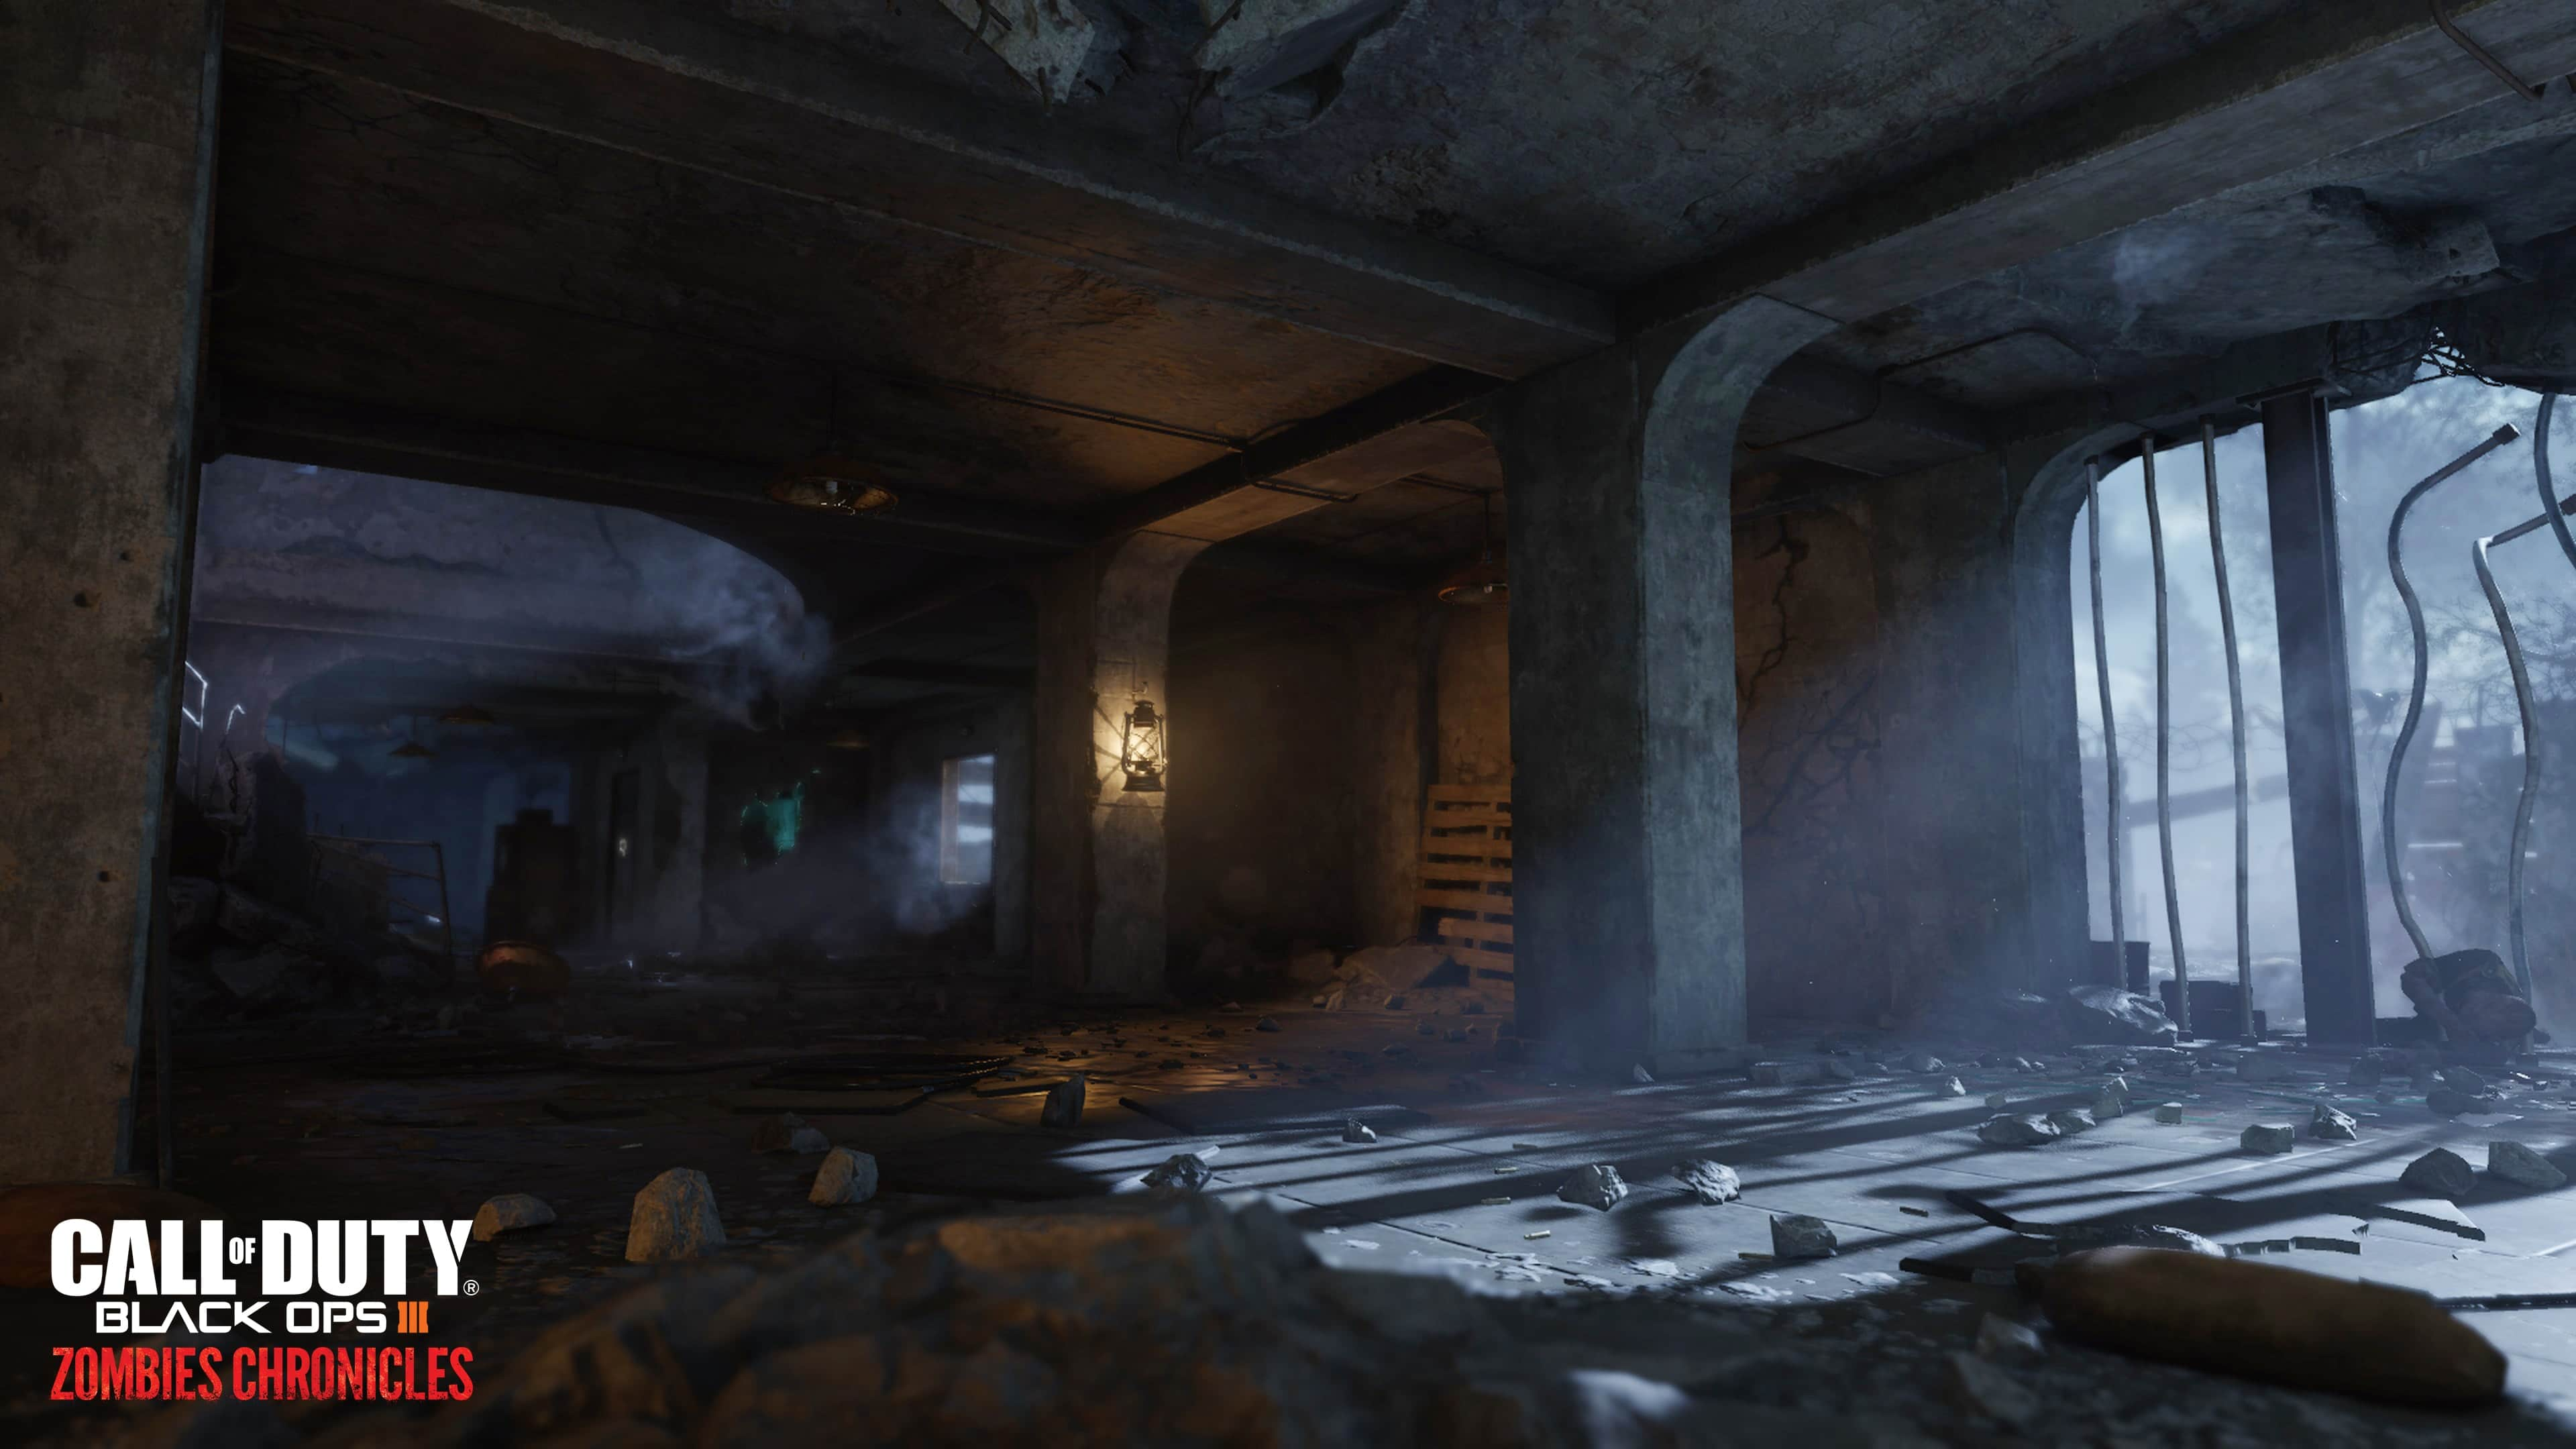 Call of Duty Black Ops III Zombies Chronicles_Nacht Der Untoten map_environment shot